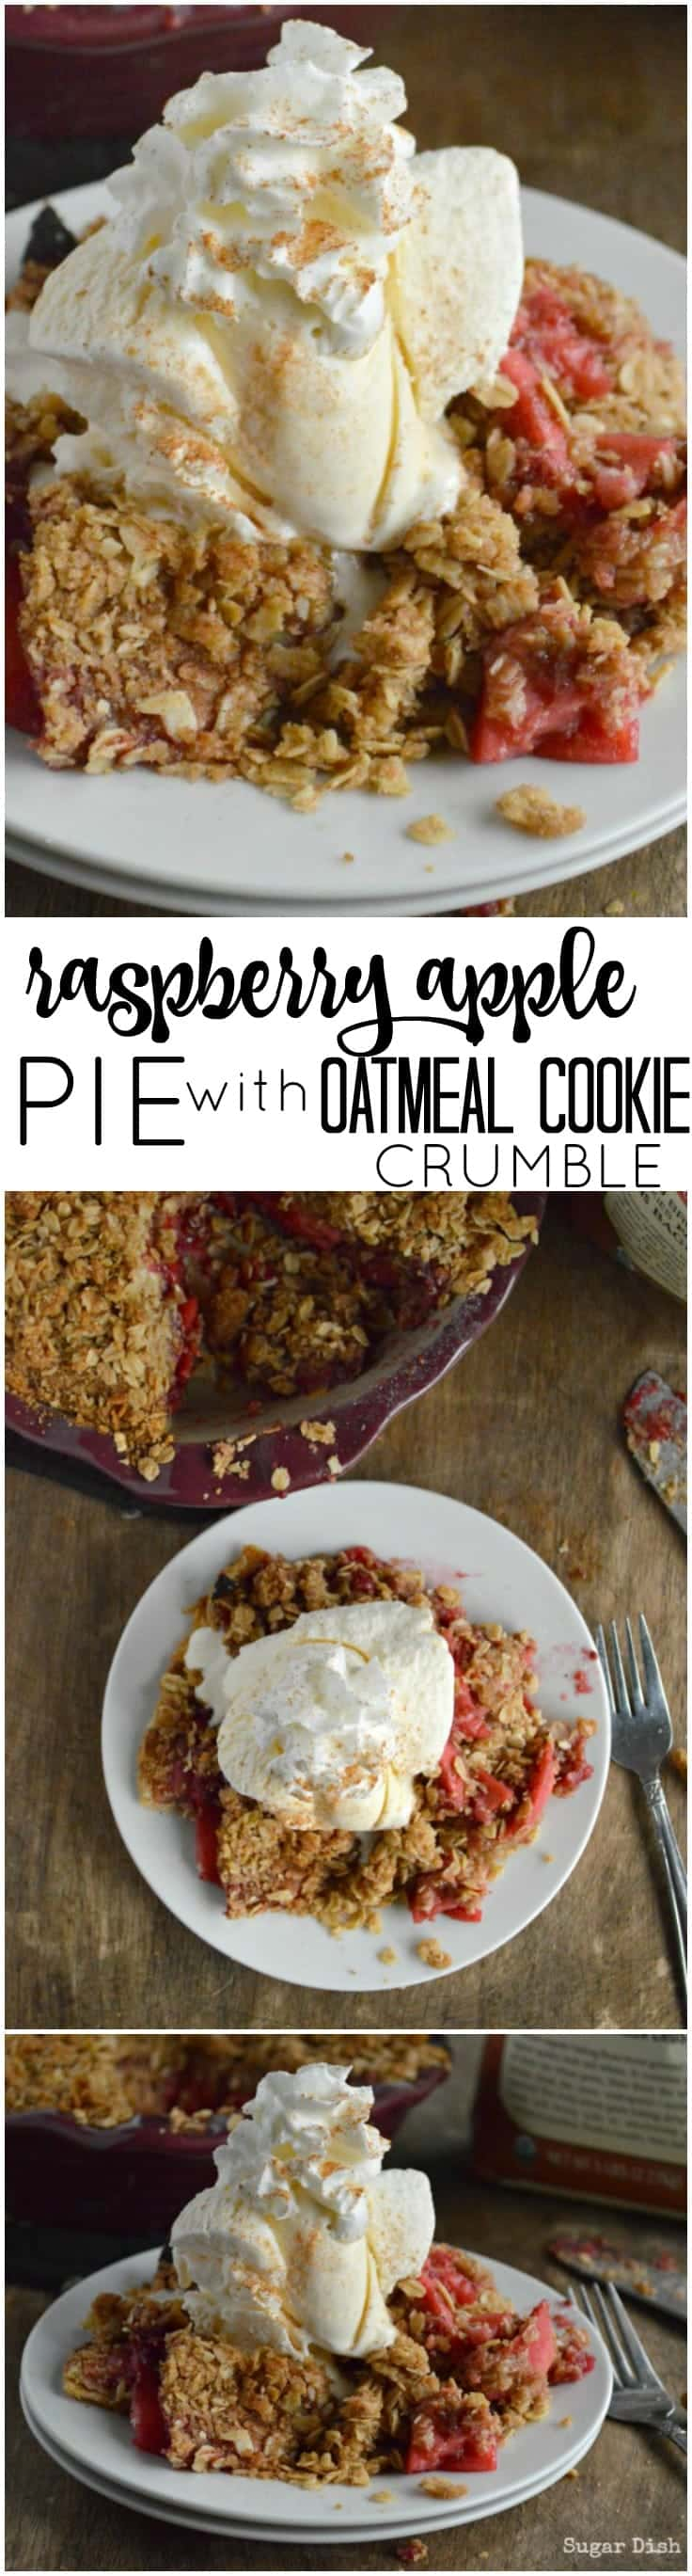 Raspberry Apple Pie with oatmeal Cookie Crumble is a sweet, tart, beautiful fall treat!